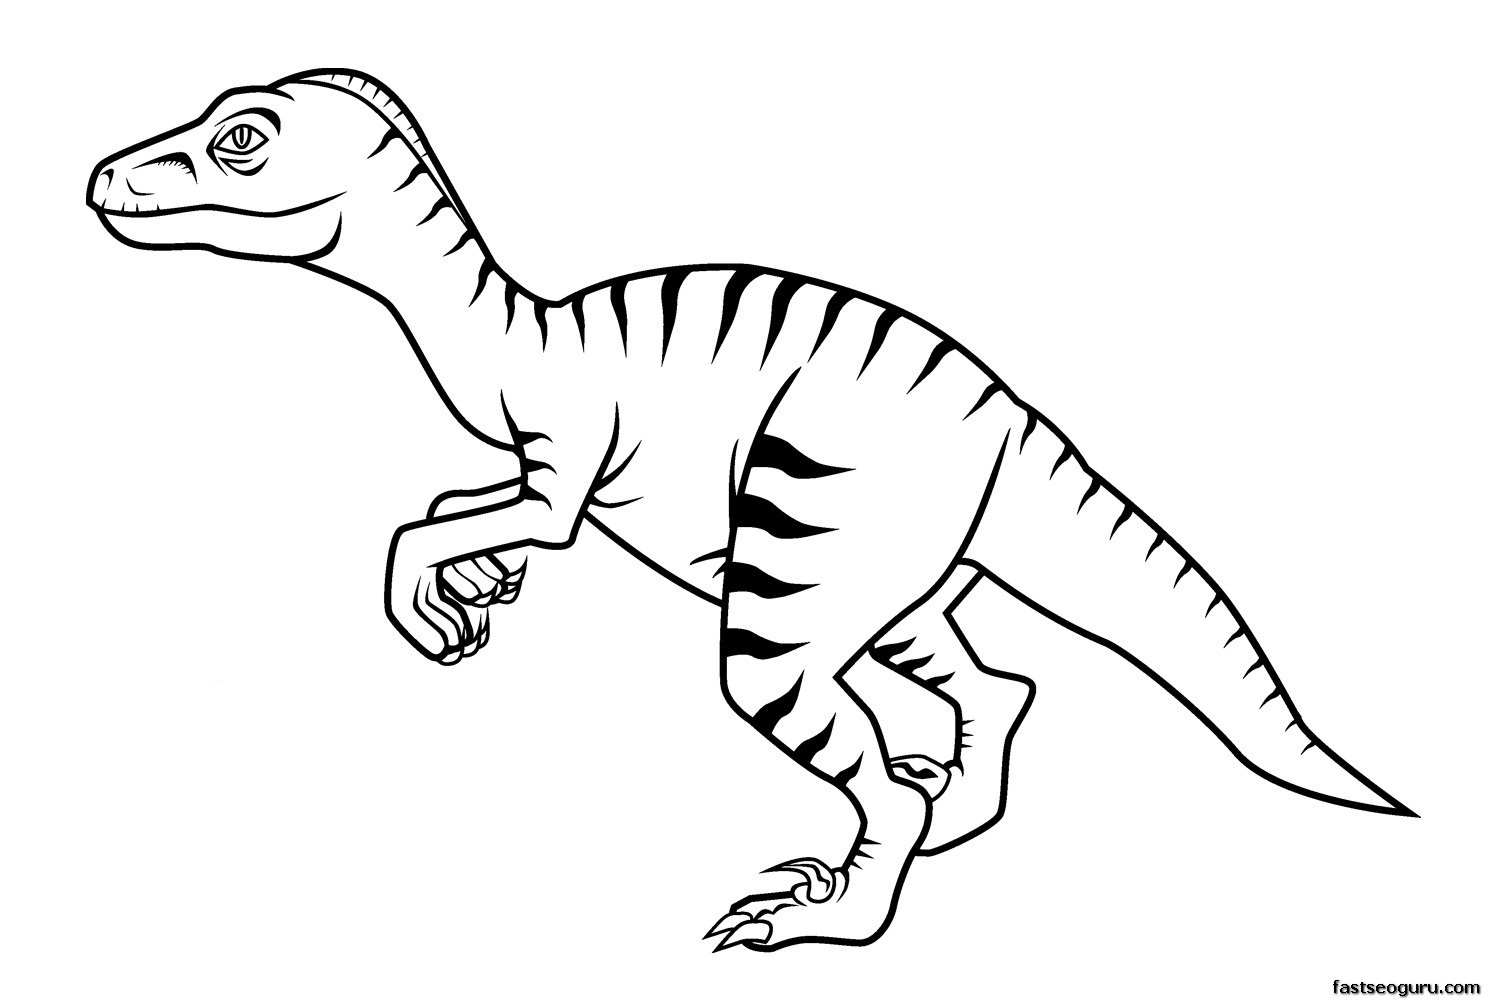 dinsaur coloring pages - photo#13